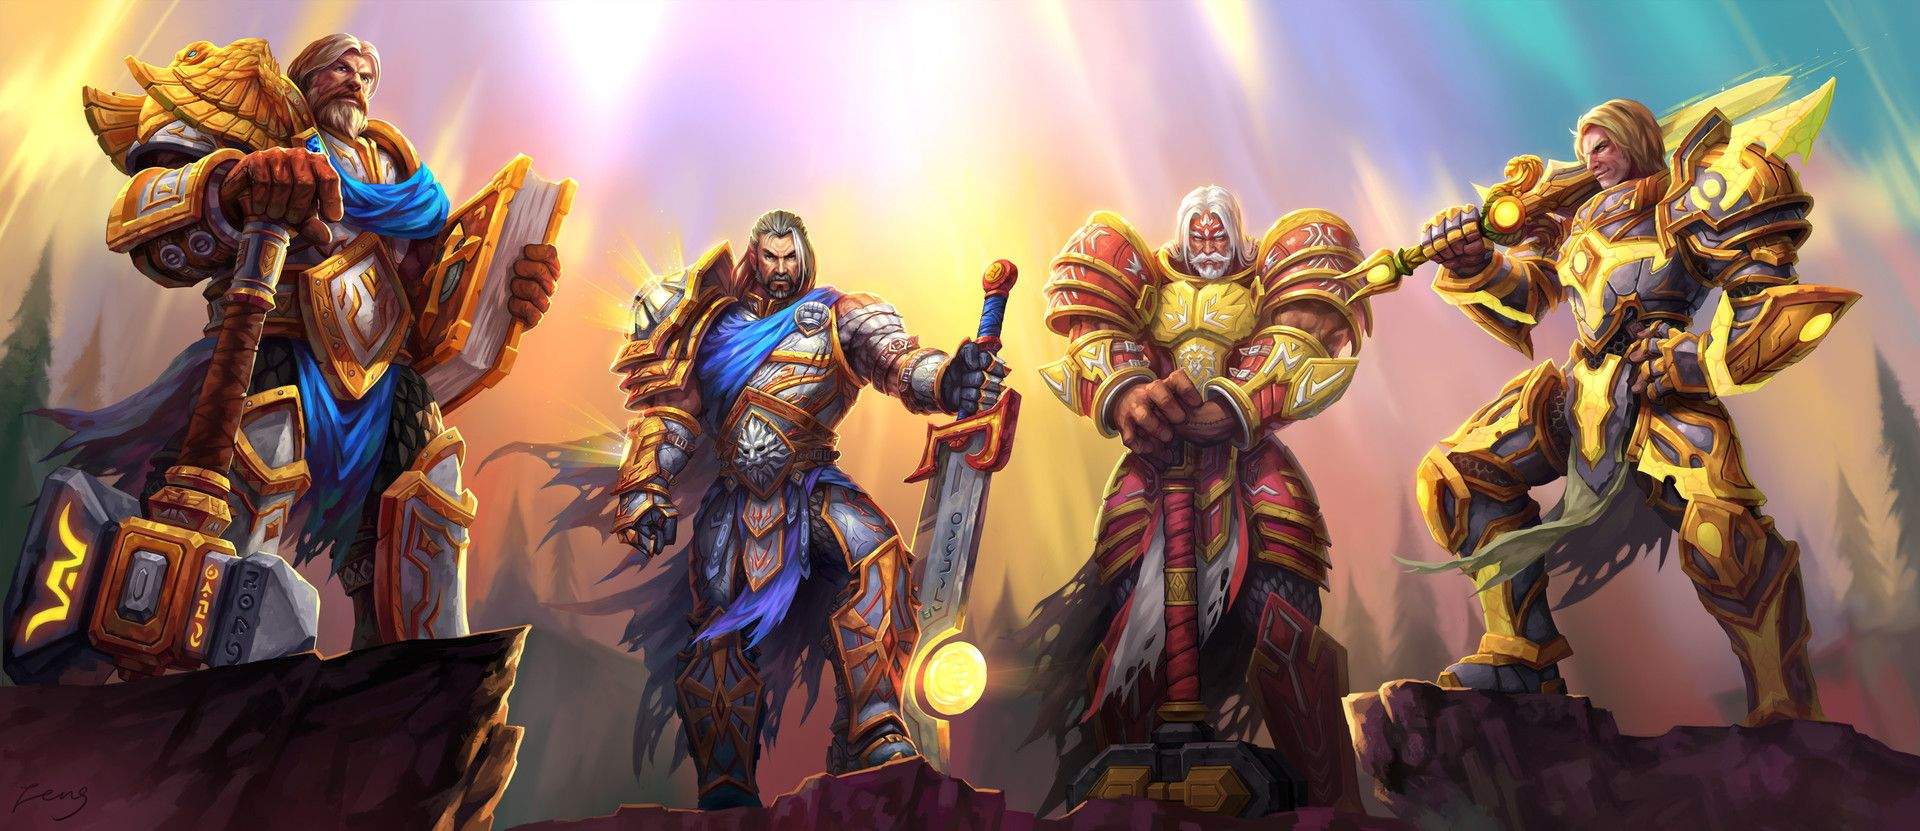 Knights Of The Silver Hand By Jiangfeng Feng Worldofwarcraft